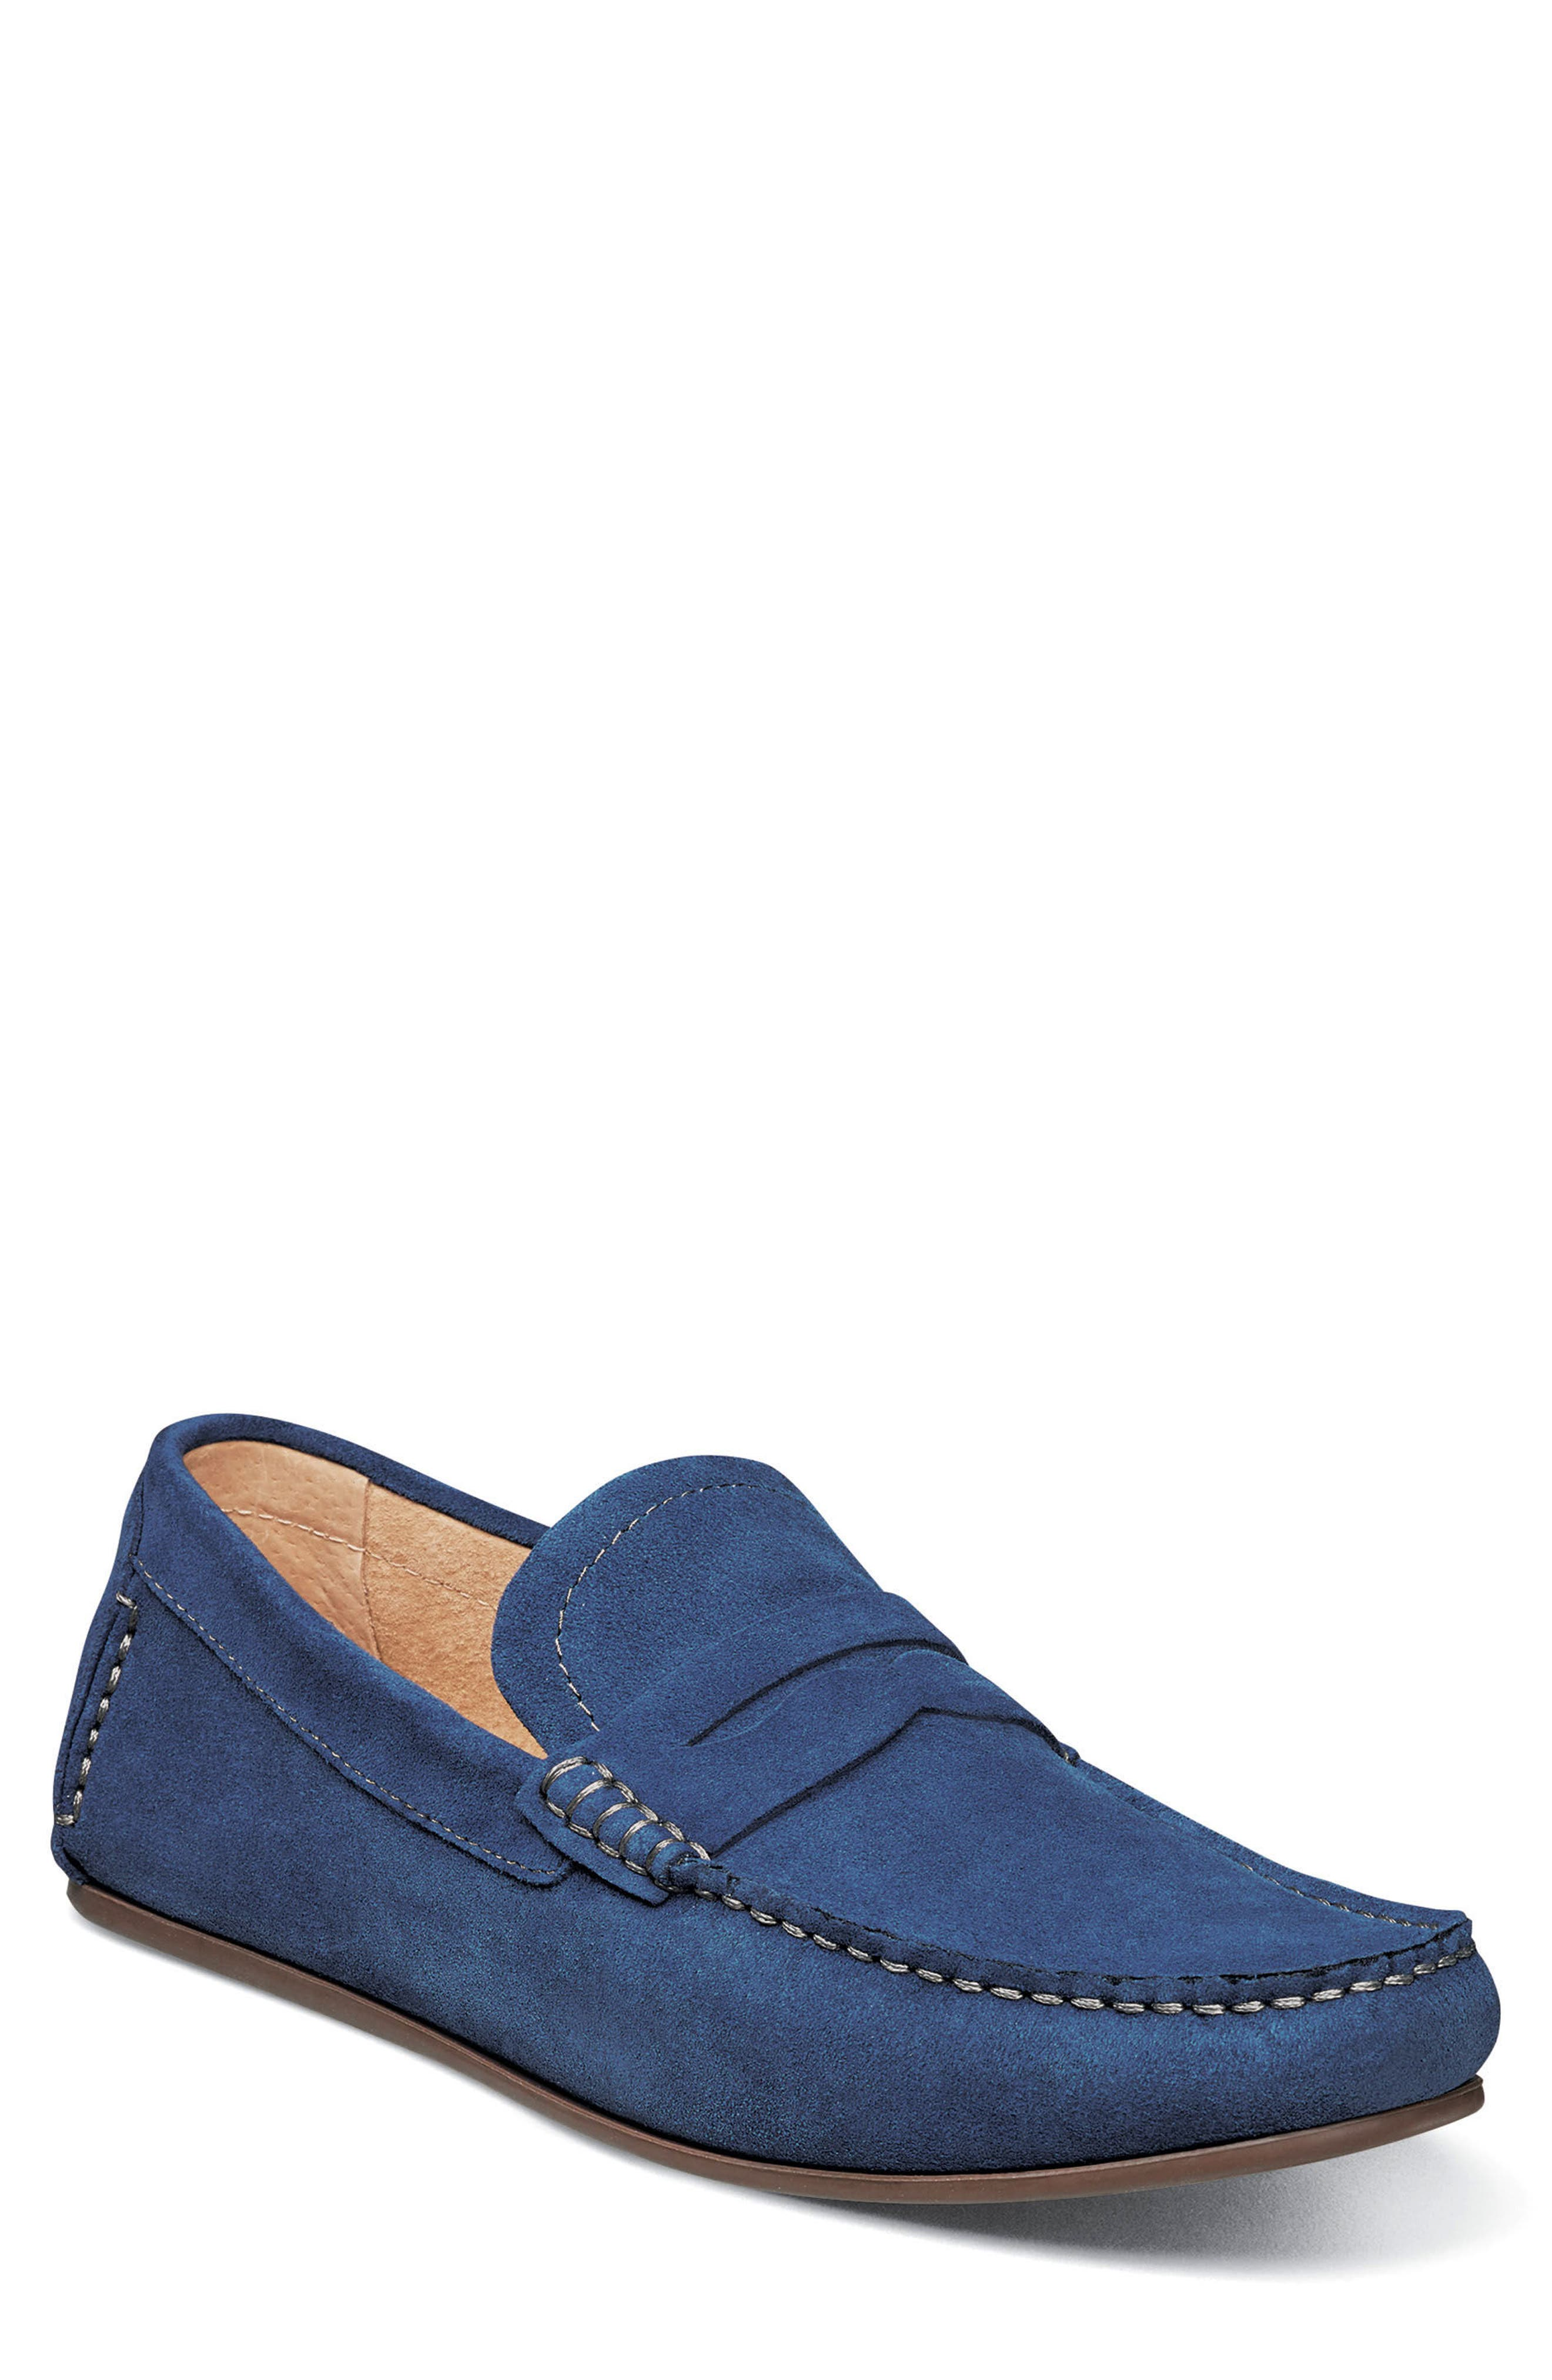 Denison Driving Loafer,                             Main thumbnail 1, color,                             BLUE SUEDE